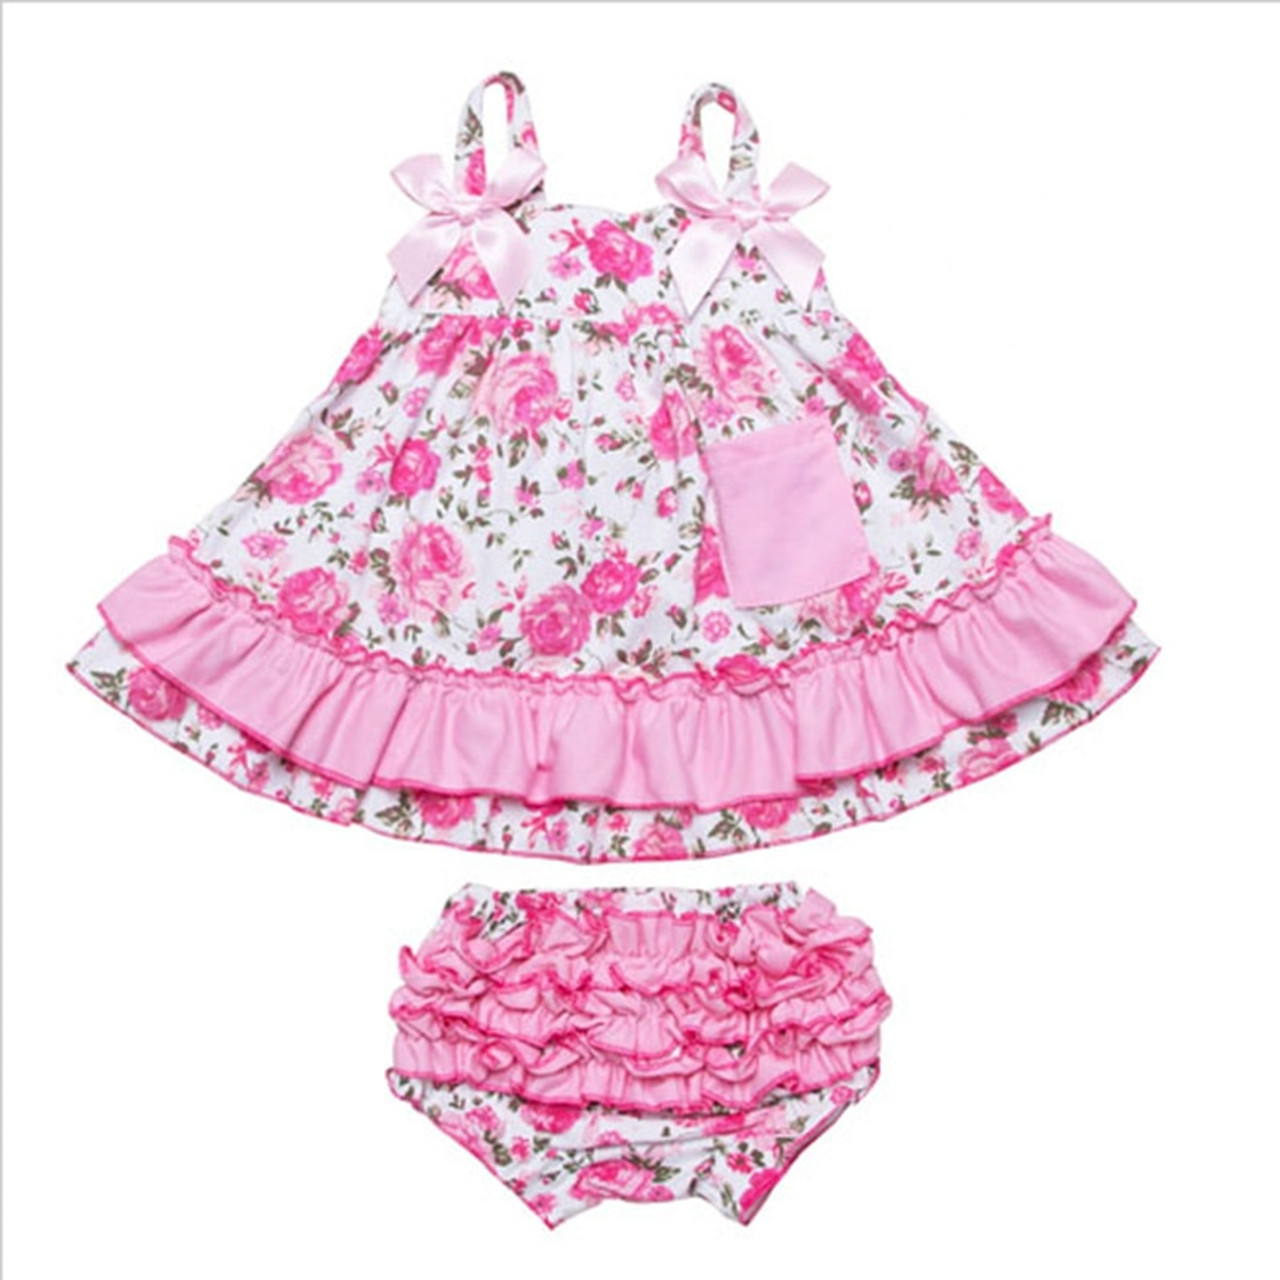 d912e6979 2018 Summer Baby Clothing Newborn Baby Girl Clothes Dress Infant ...